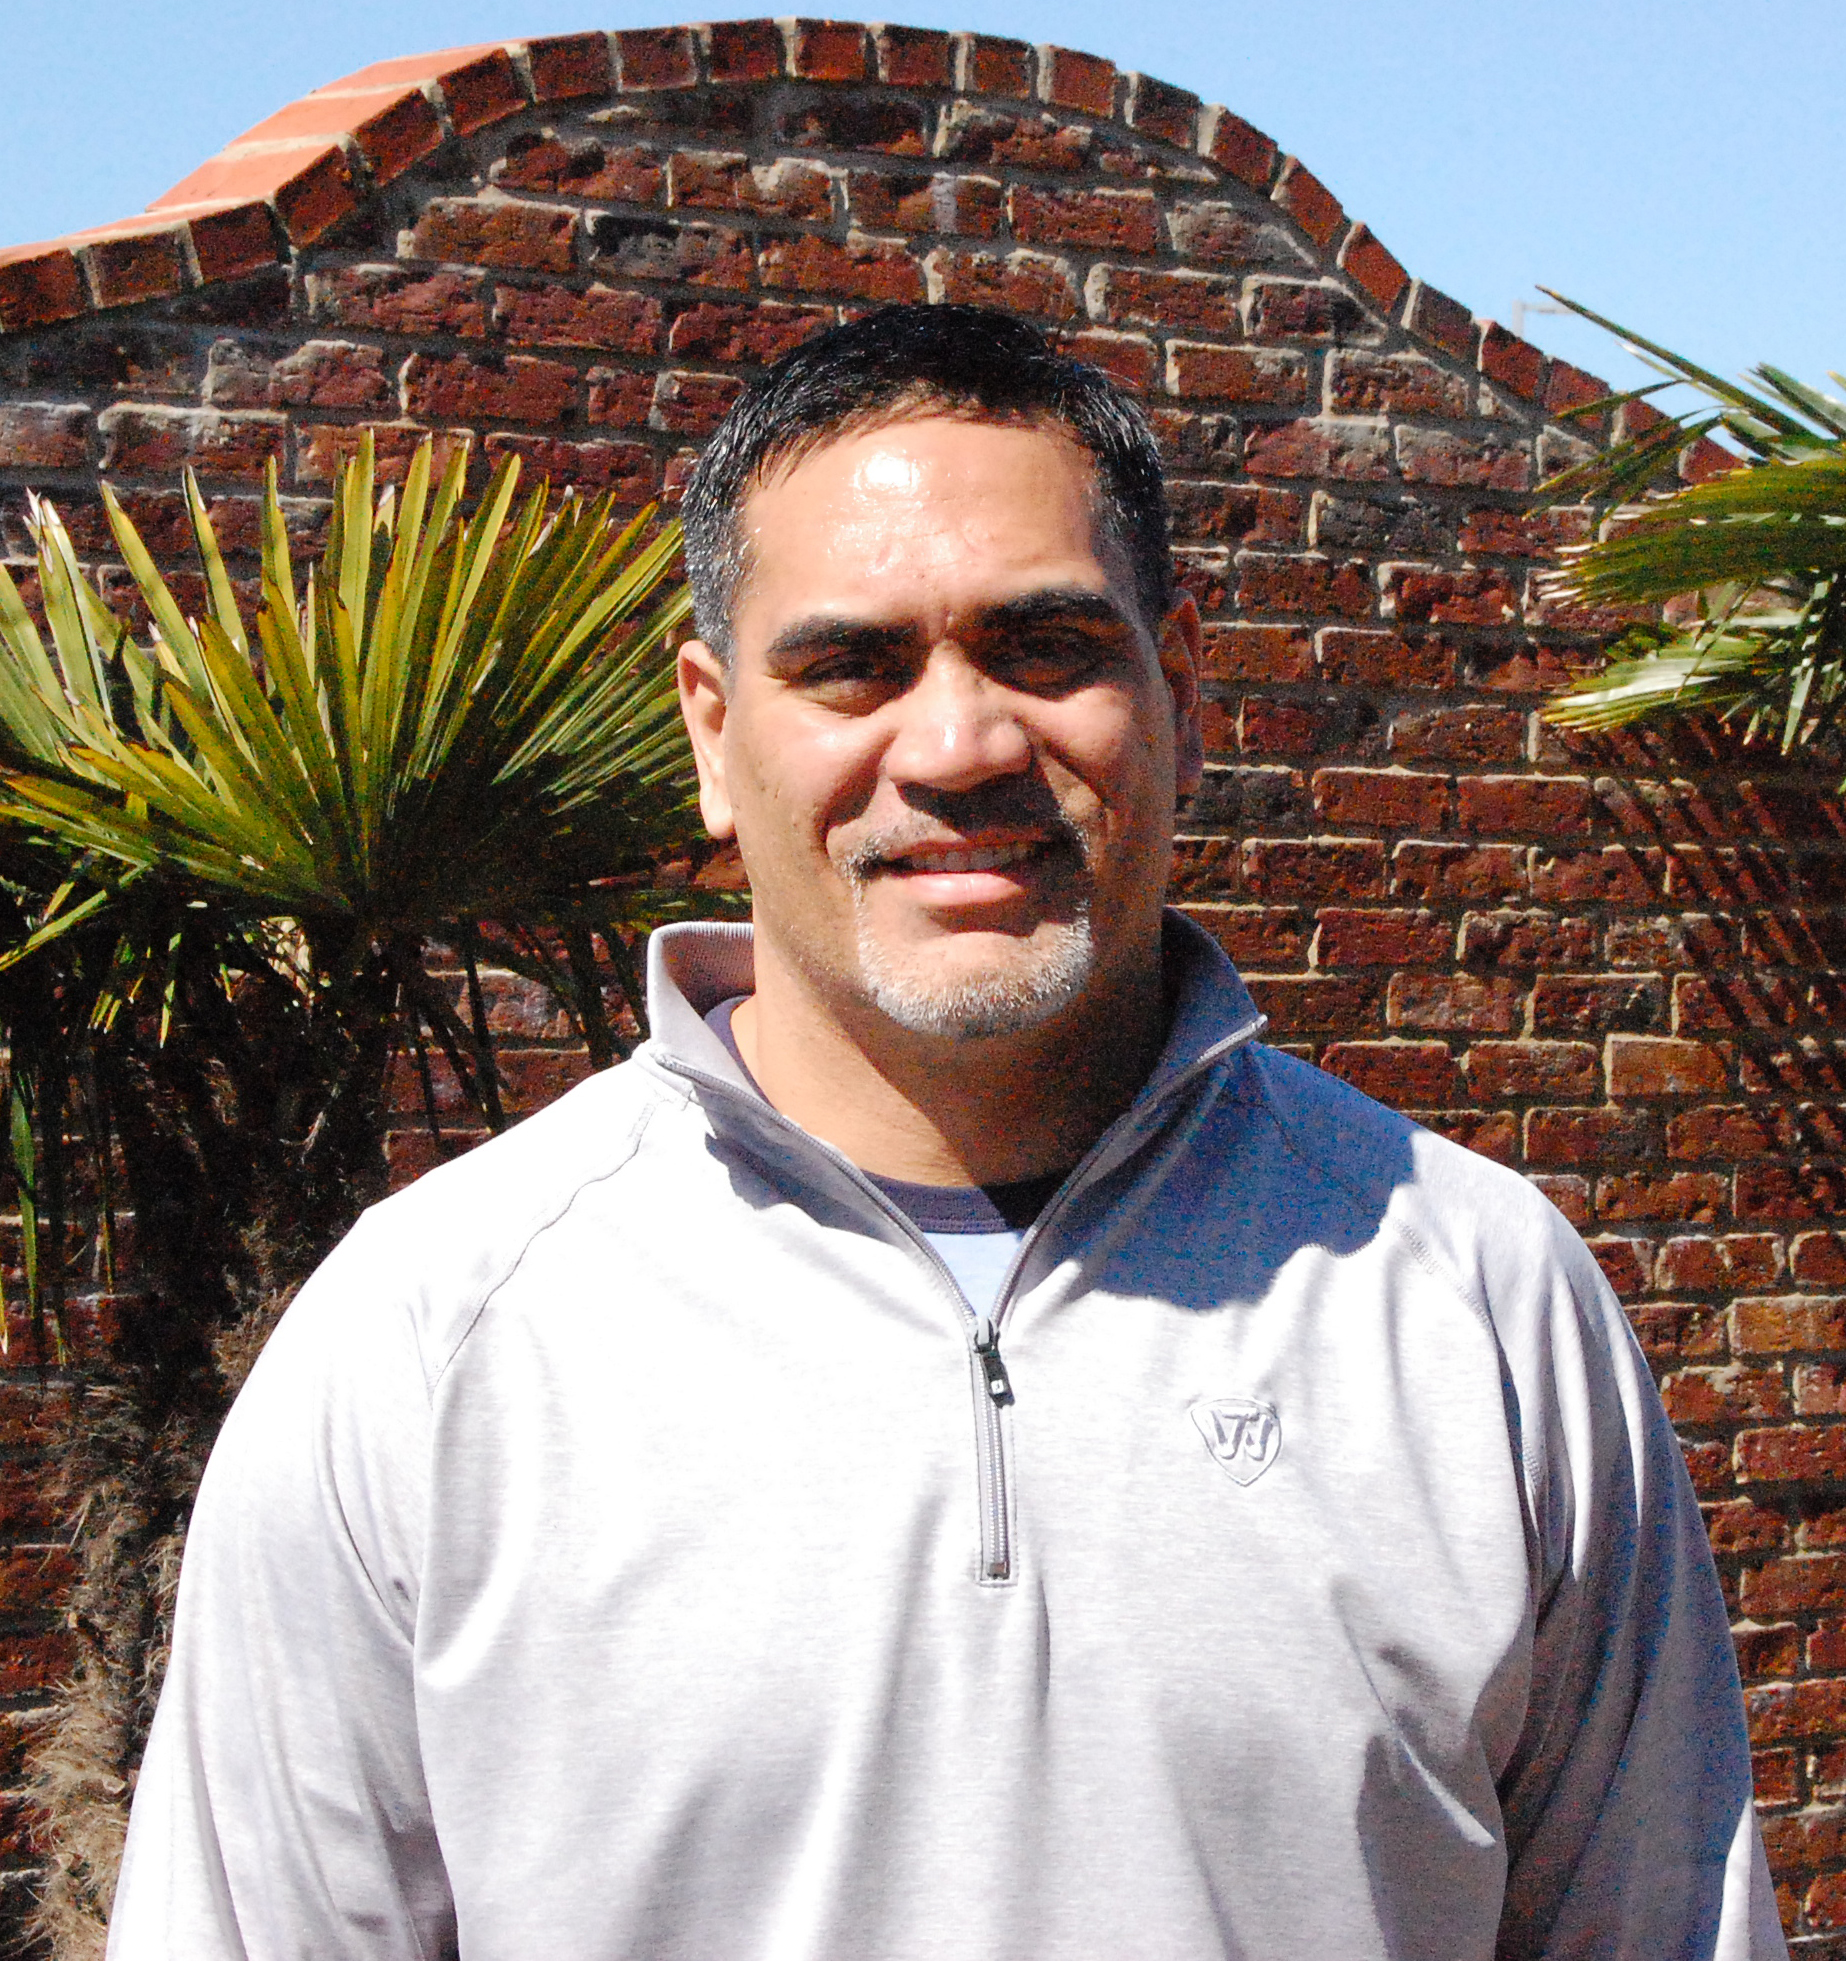 Kevin Mawae. Photo by Mark H. Hunter